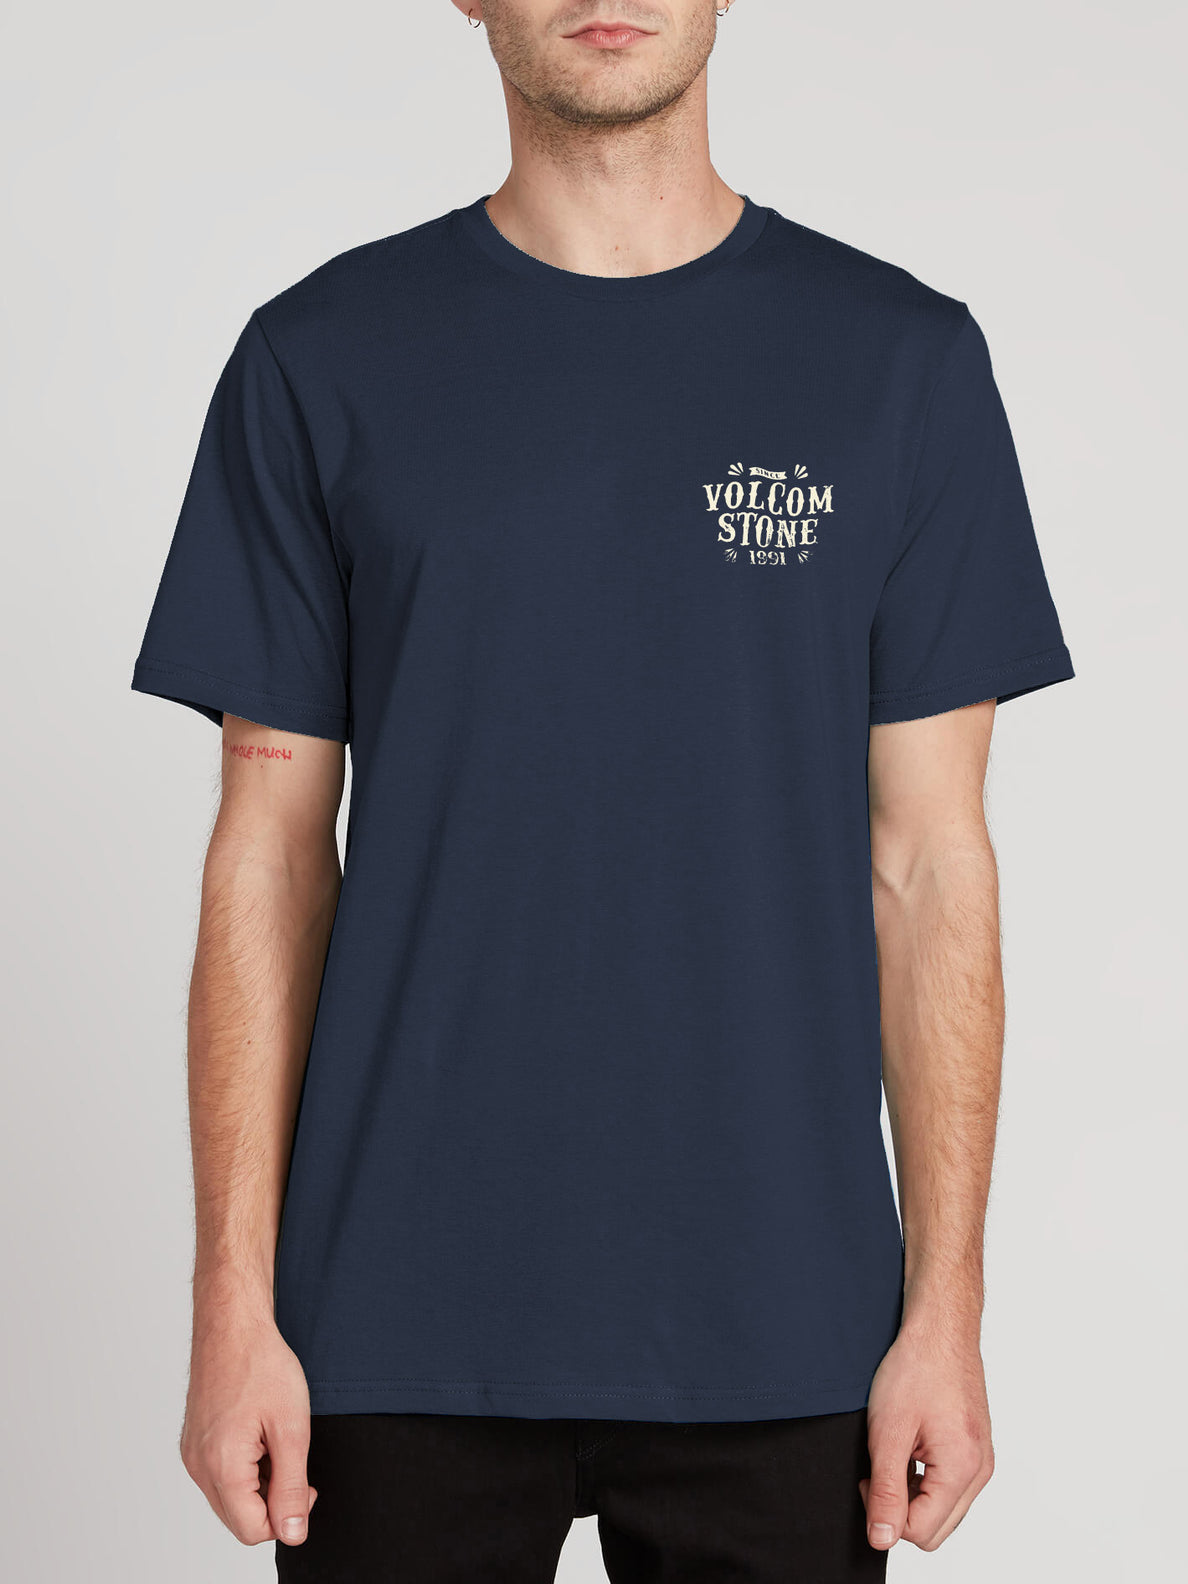 Kally Short Sleeve Tee - Navy